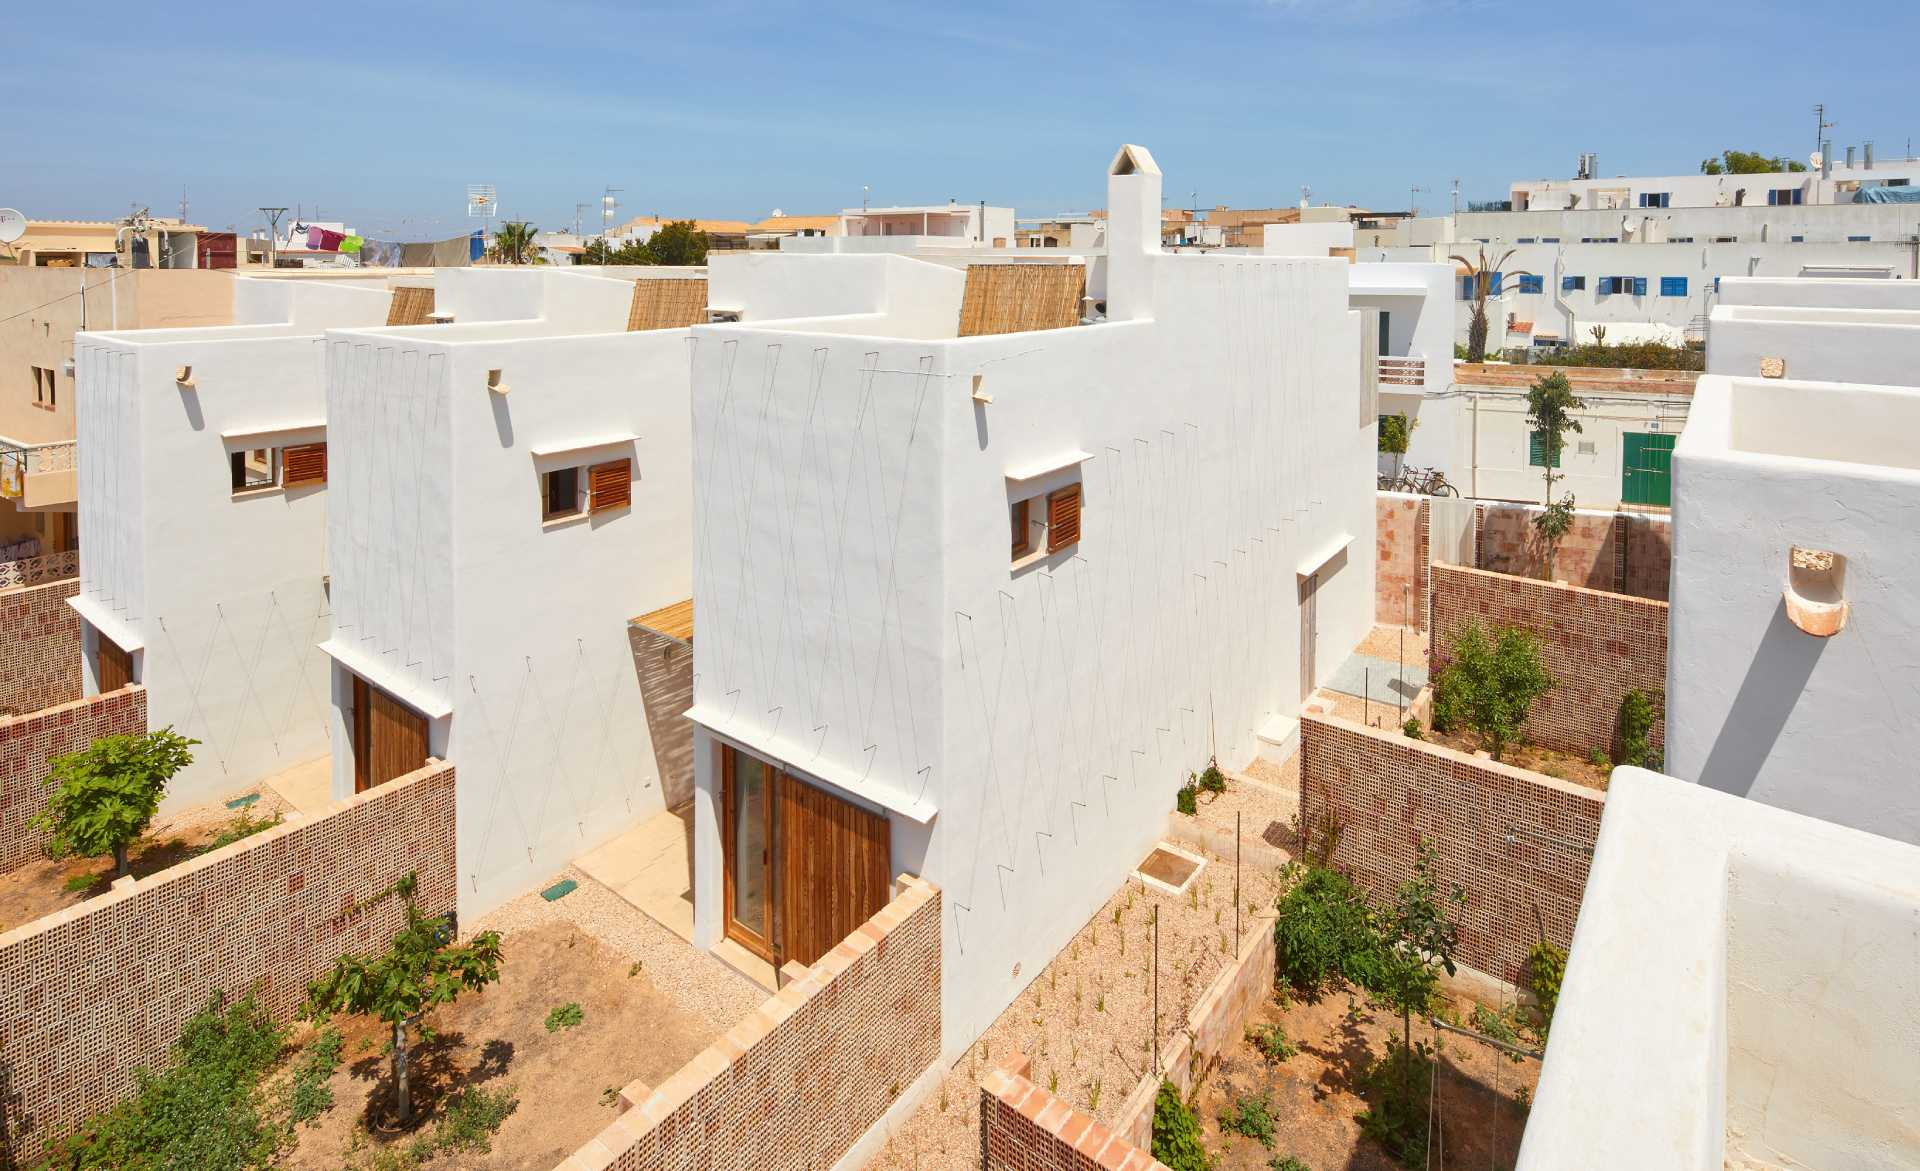 14 Dwellings in Formentera  - 06 formentera 39